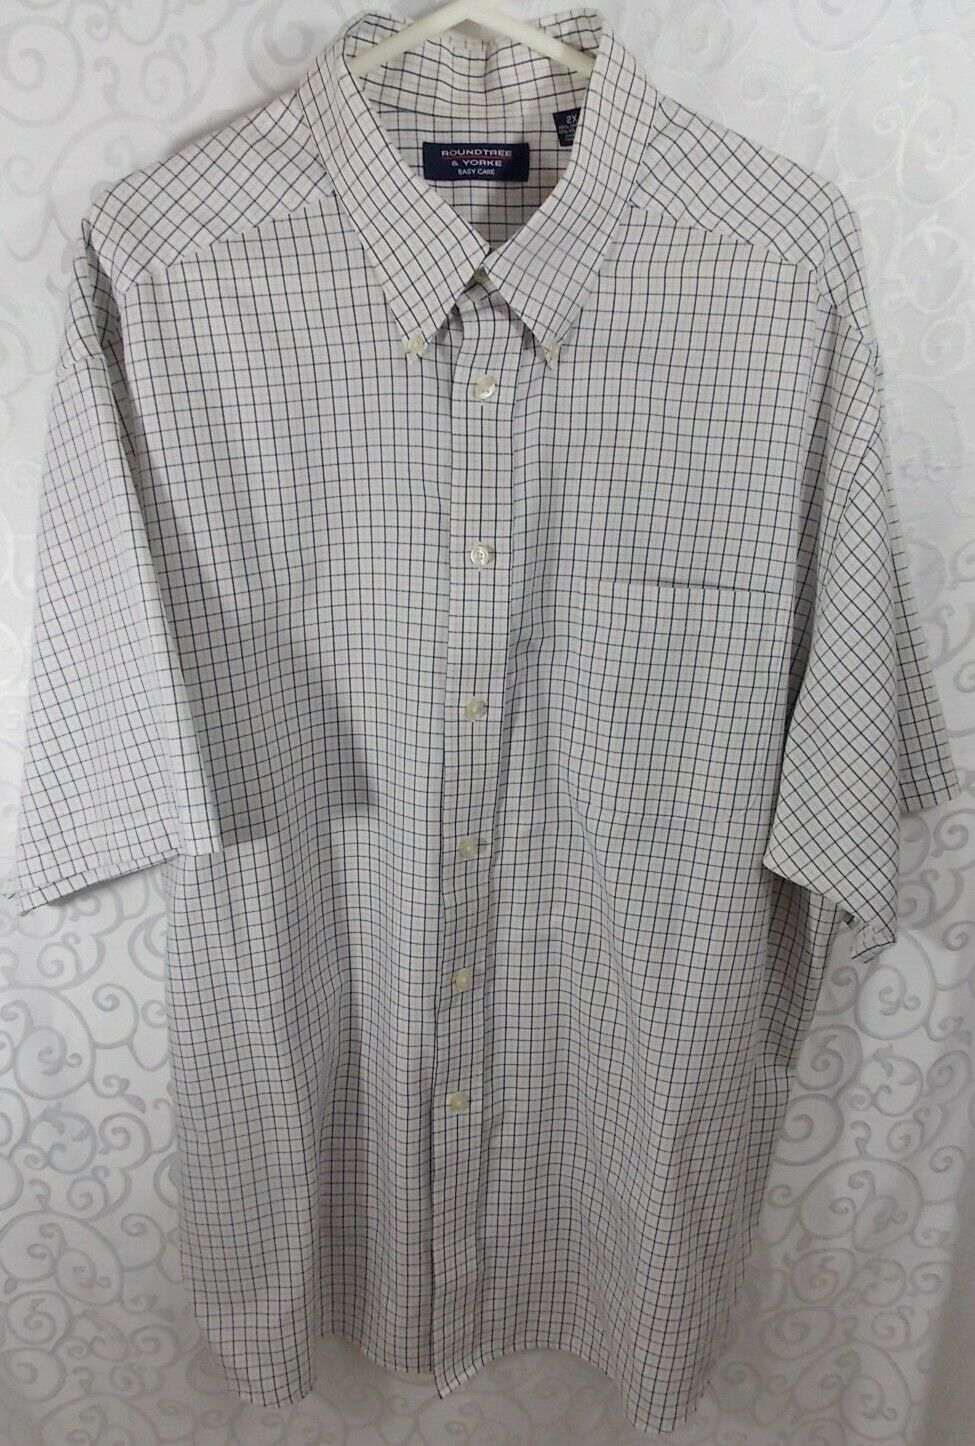 12d18970b Roundtree Yorke Mens Short Sleeve Shirt, 2X Easy Care, Button Front ...